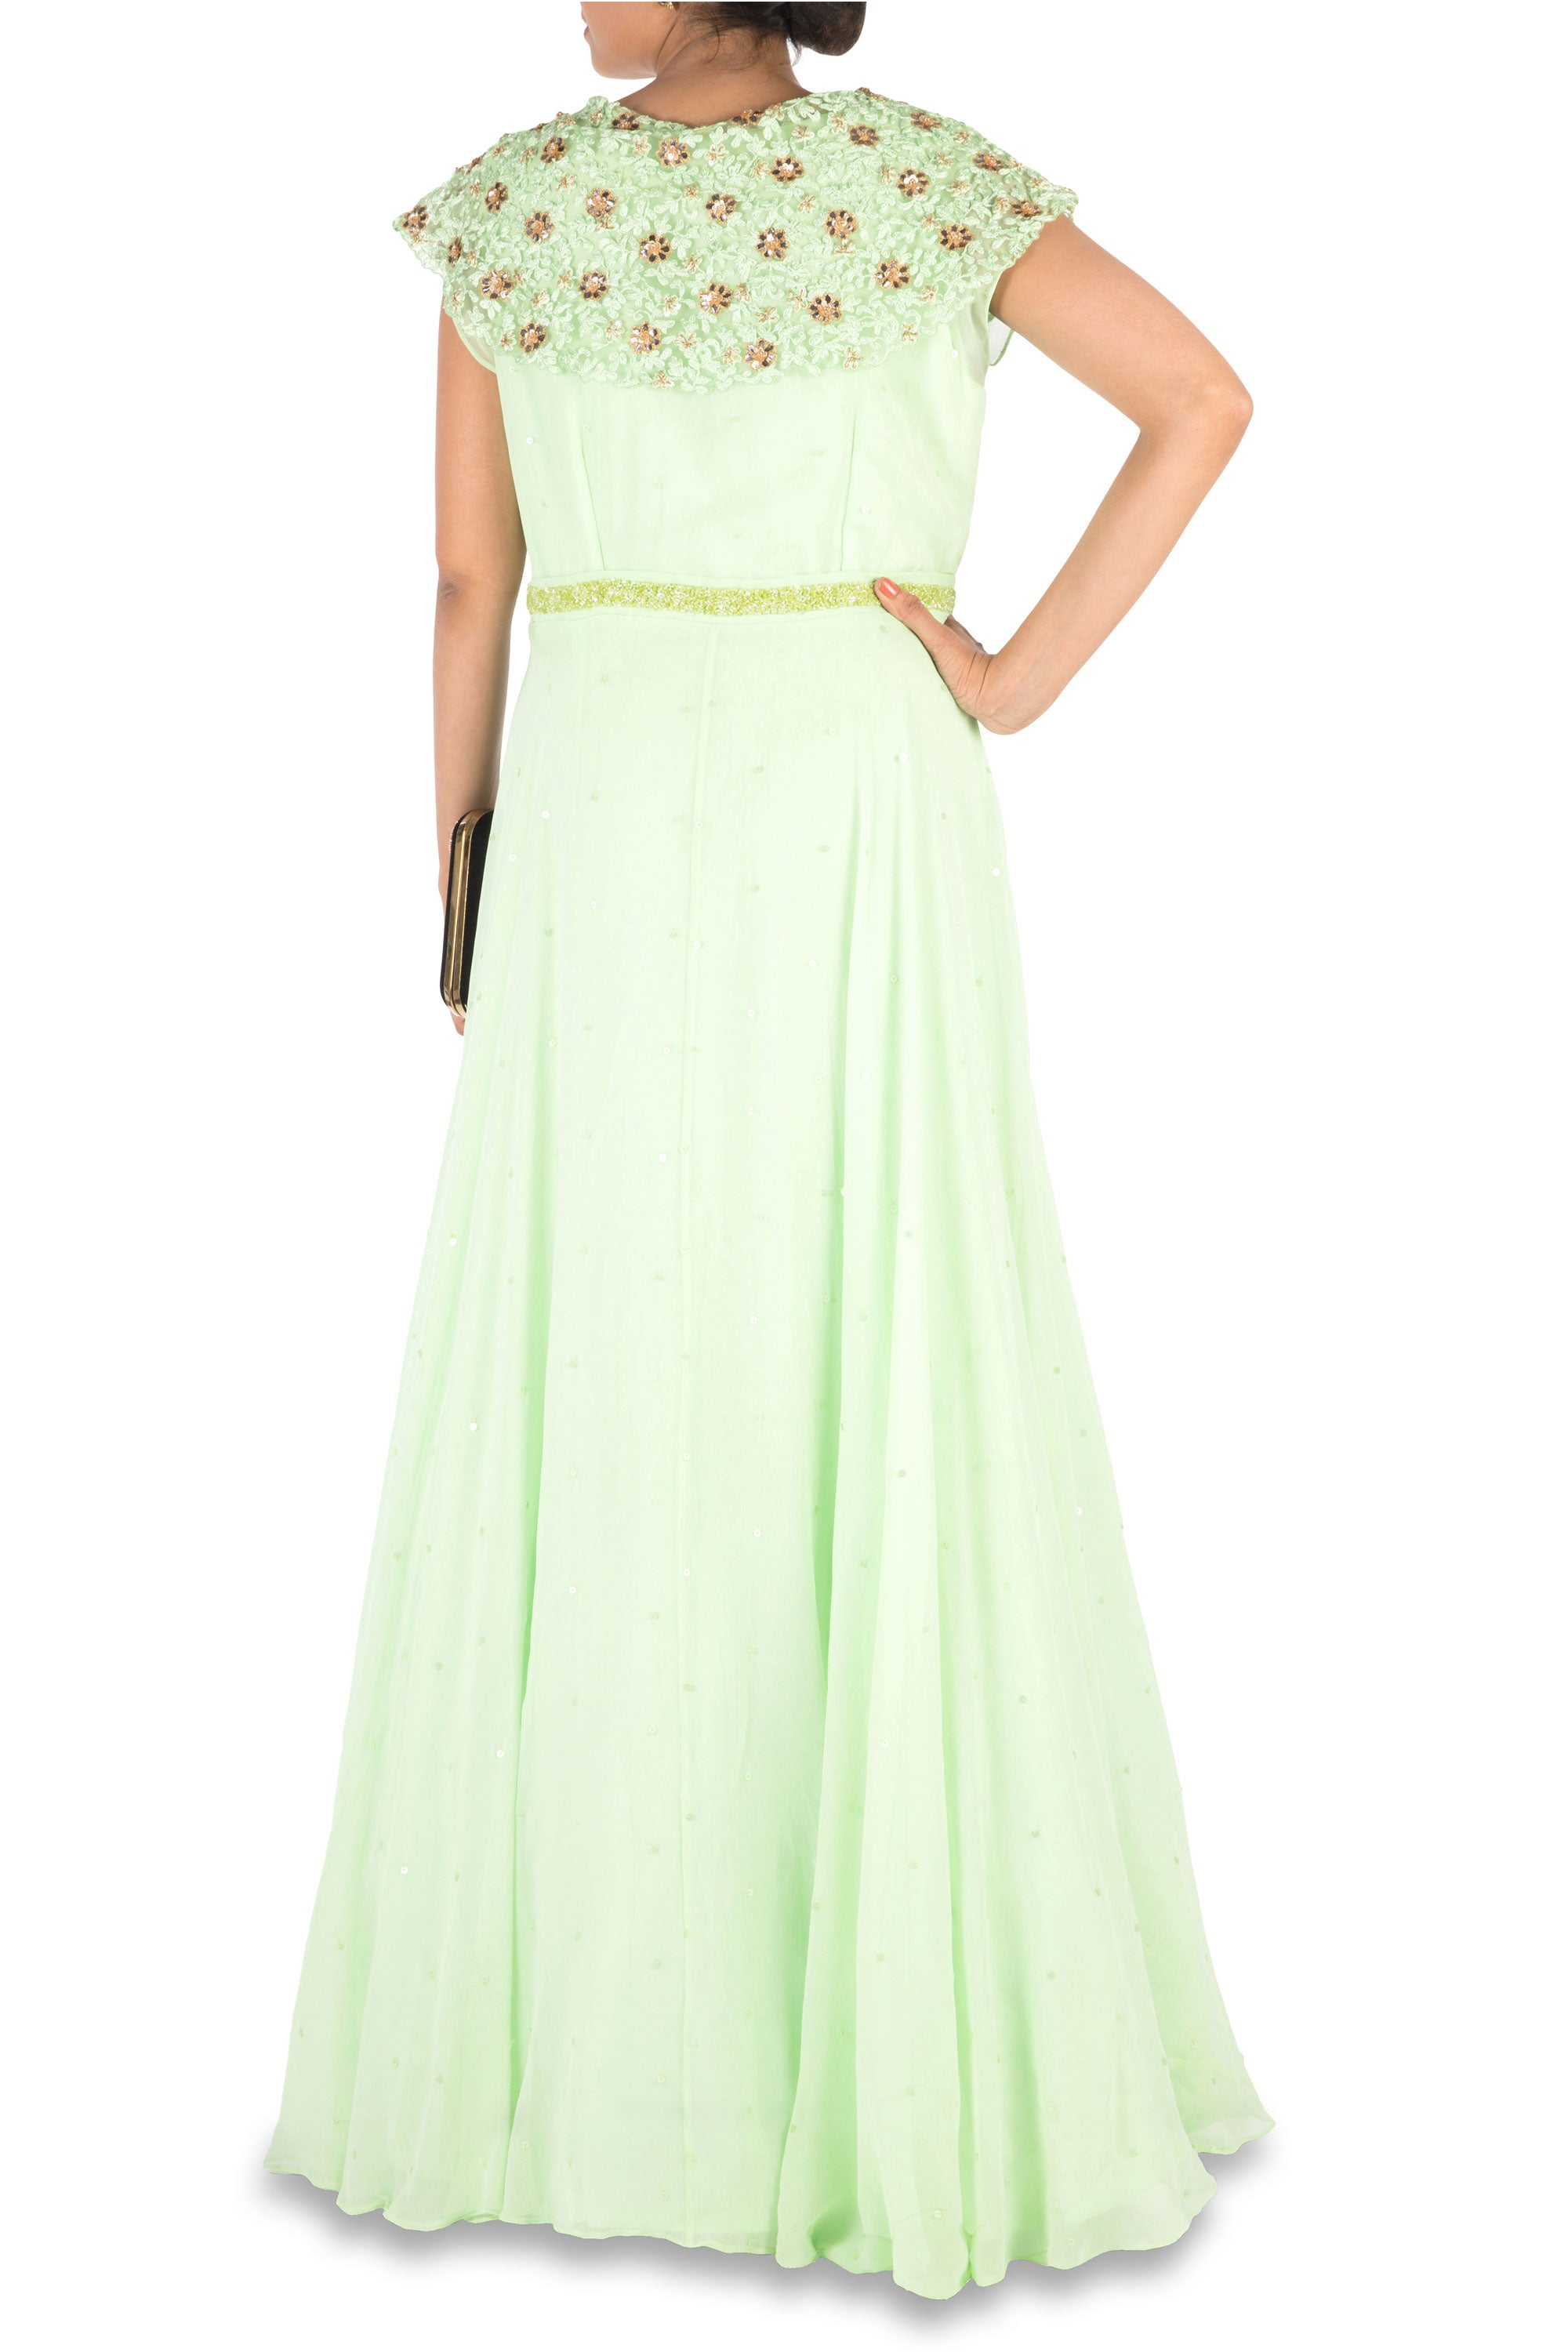 Hand Embroidered Mint Green Gown Back